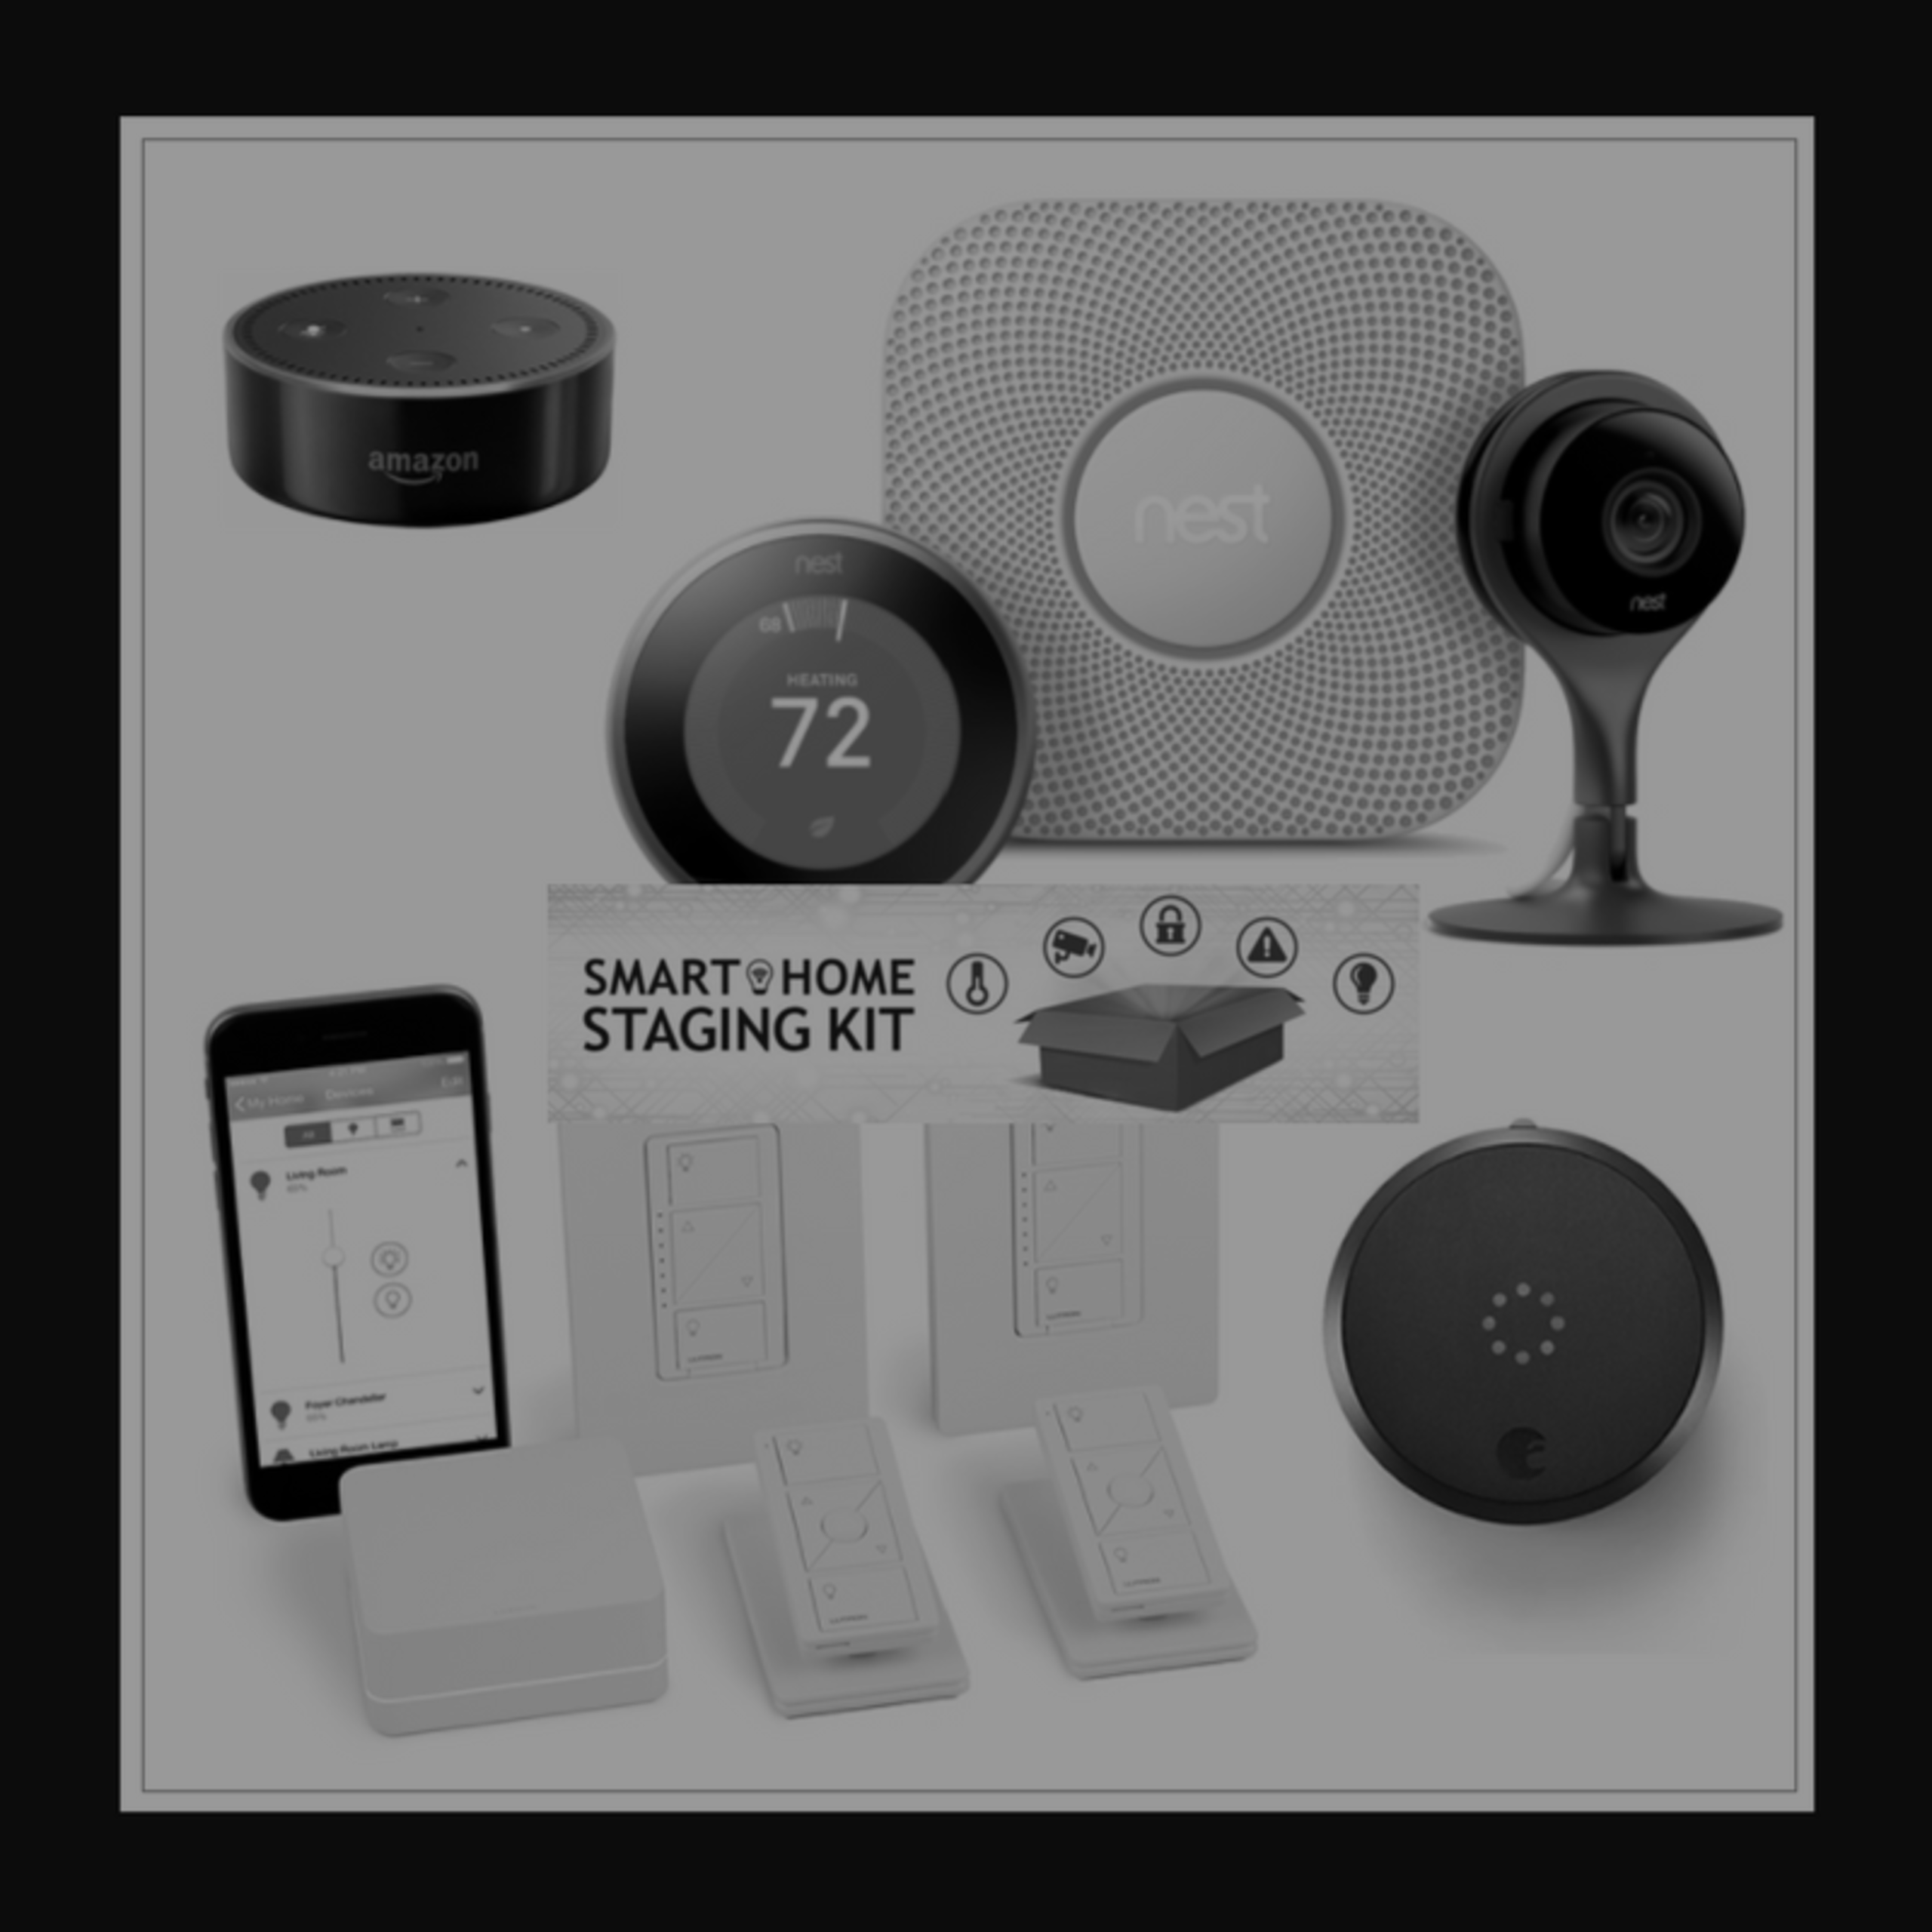 Coldwell Banker: Smart Home Made Easy